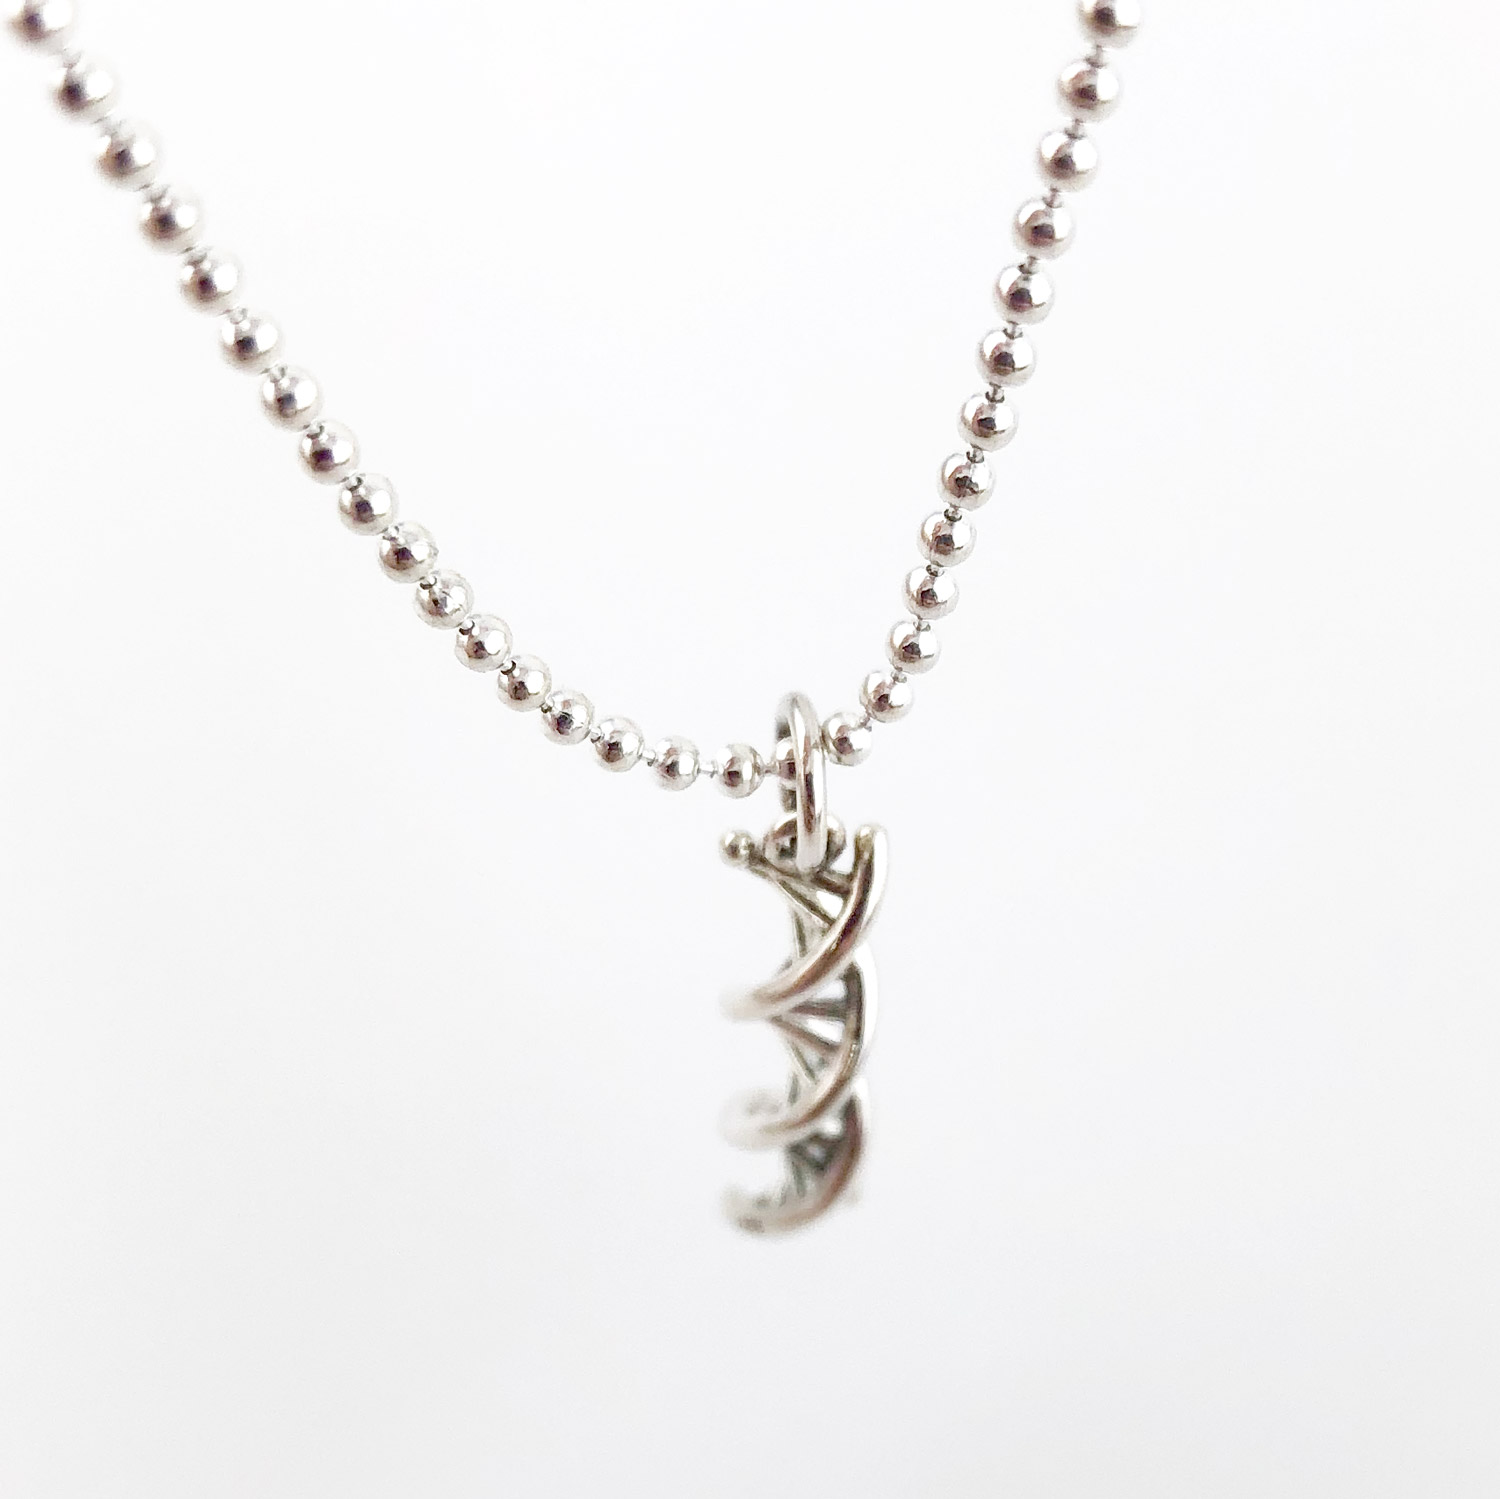 DNA Double Helix Sterling Silver Necklace